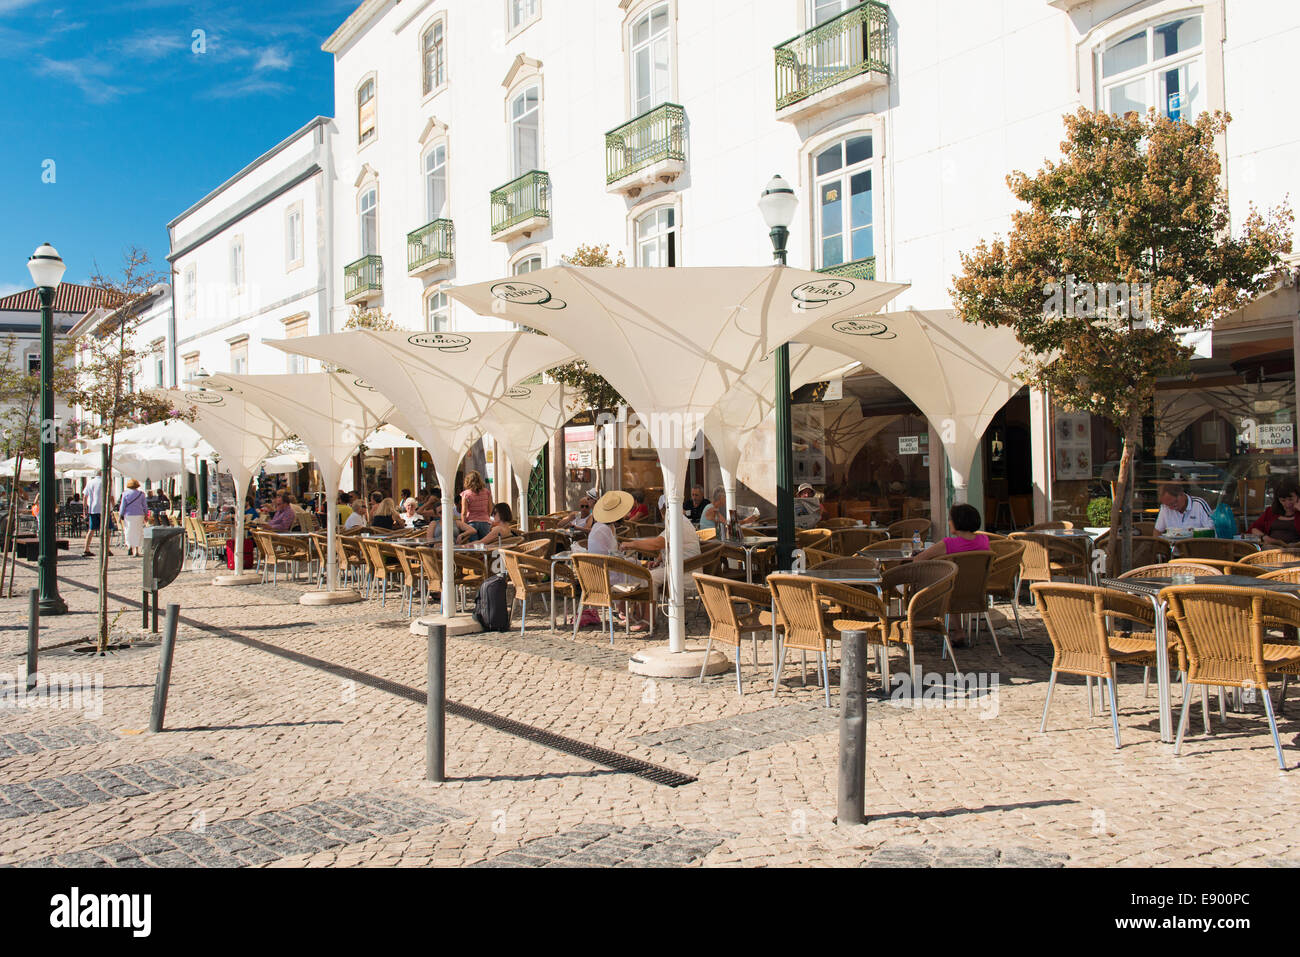 Portugal Algarve Tavira late Bronze Age port rebuilt 18th c century city town centre center pavement cafe restaurant - Stock Image